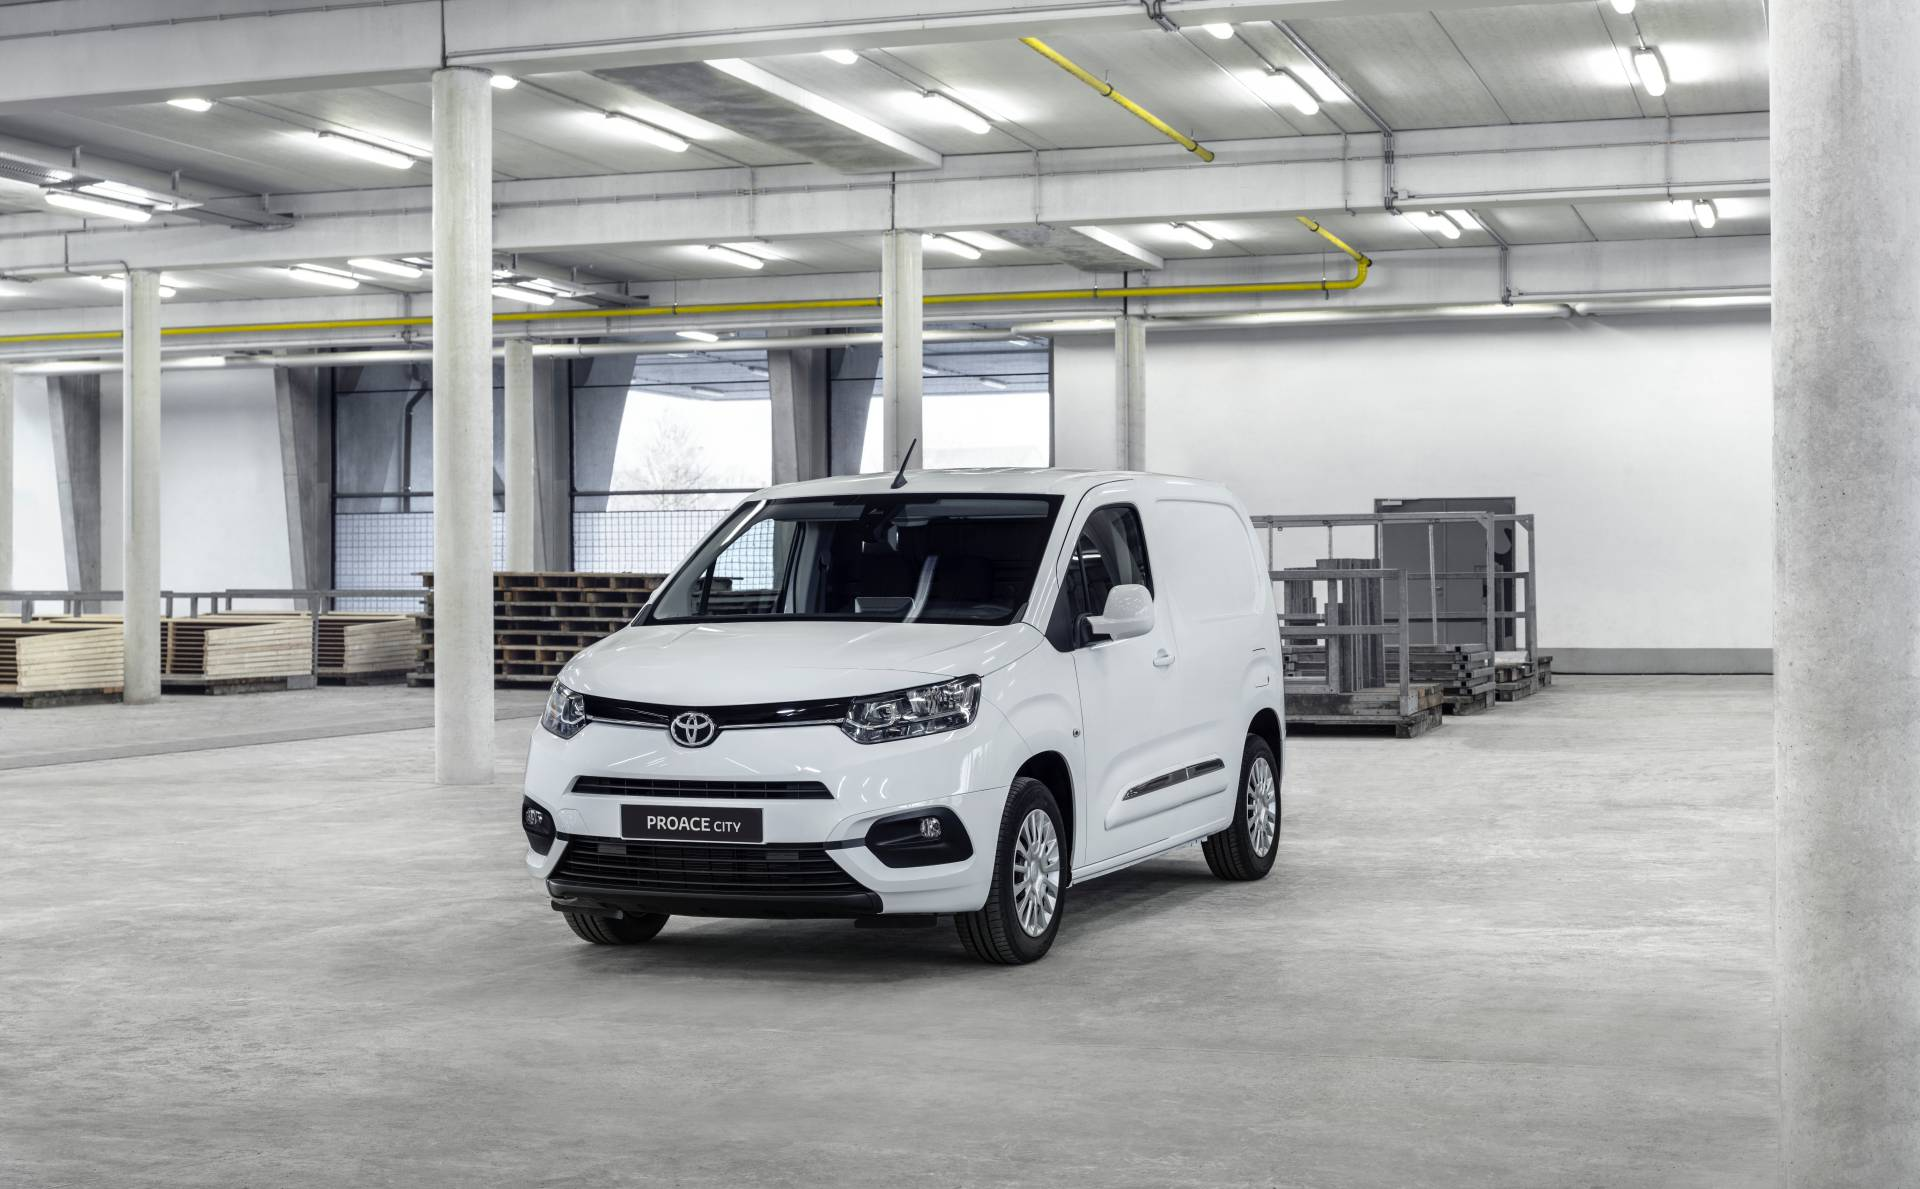 Toyota will soon be bringing its new Proace City compact van to the market in Europe